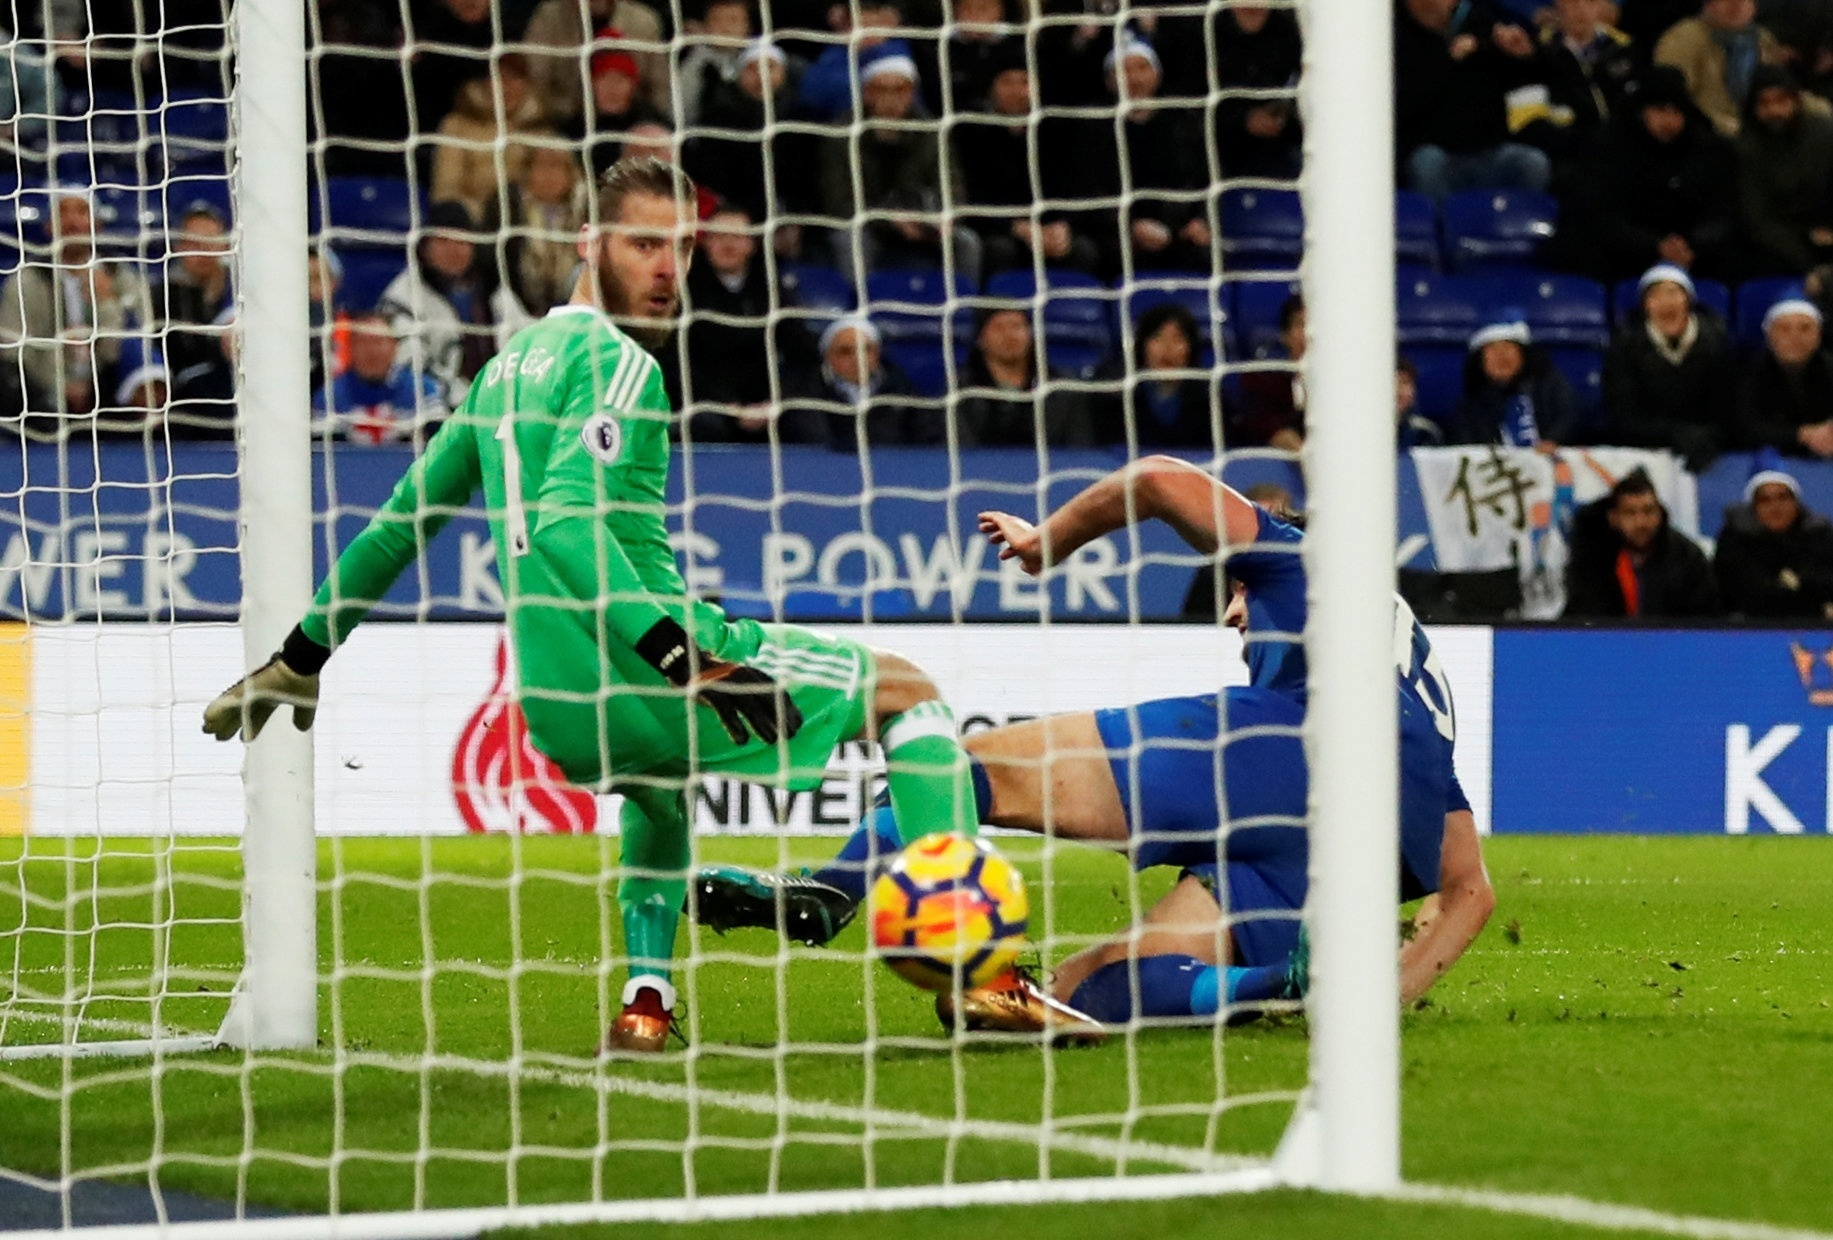 Maguire, do Leicester, finalizou no gol do United no último lance do jogo, empatando o jogo